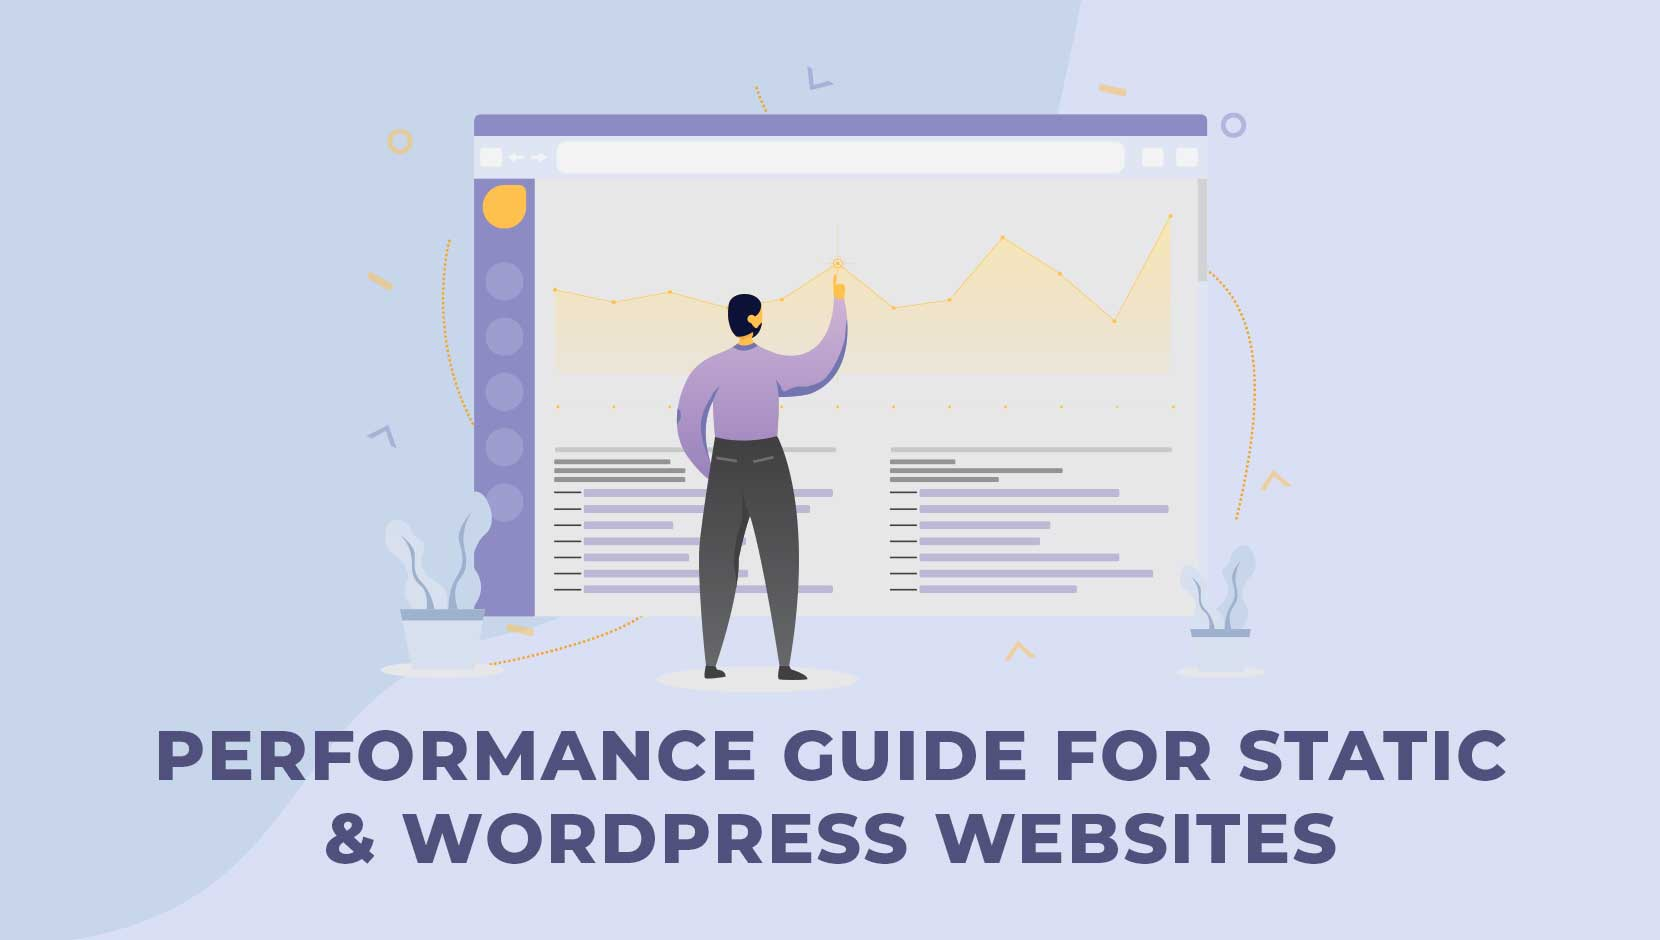 Performance Guide for Static and WordPress Websites